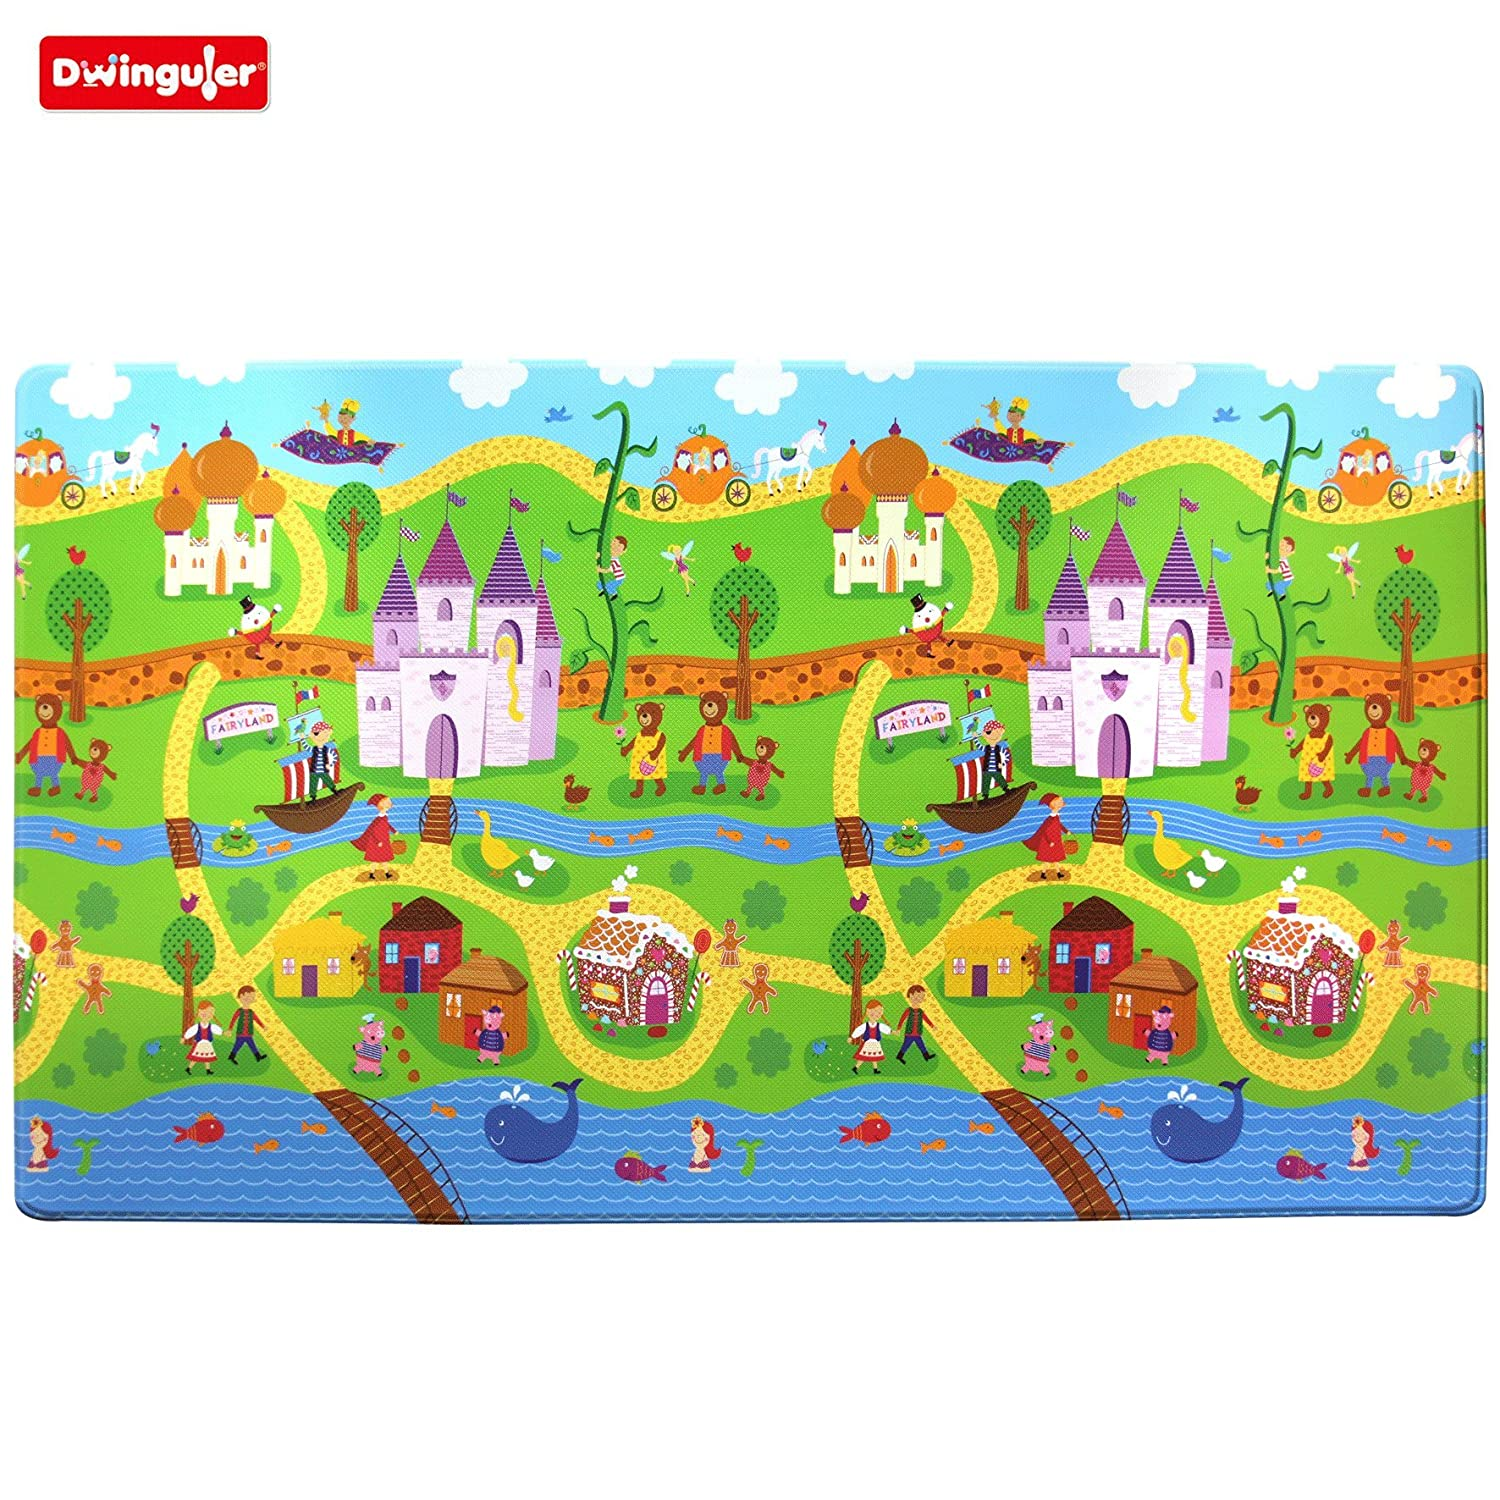 Dwinguler Eco friendly Kids Play Mat Fairy Land Amazon